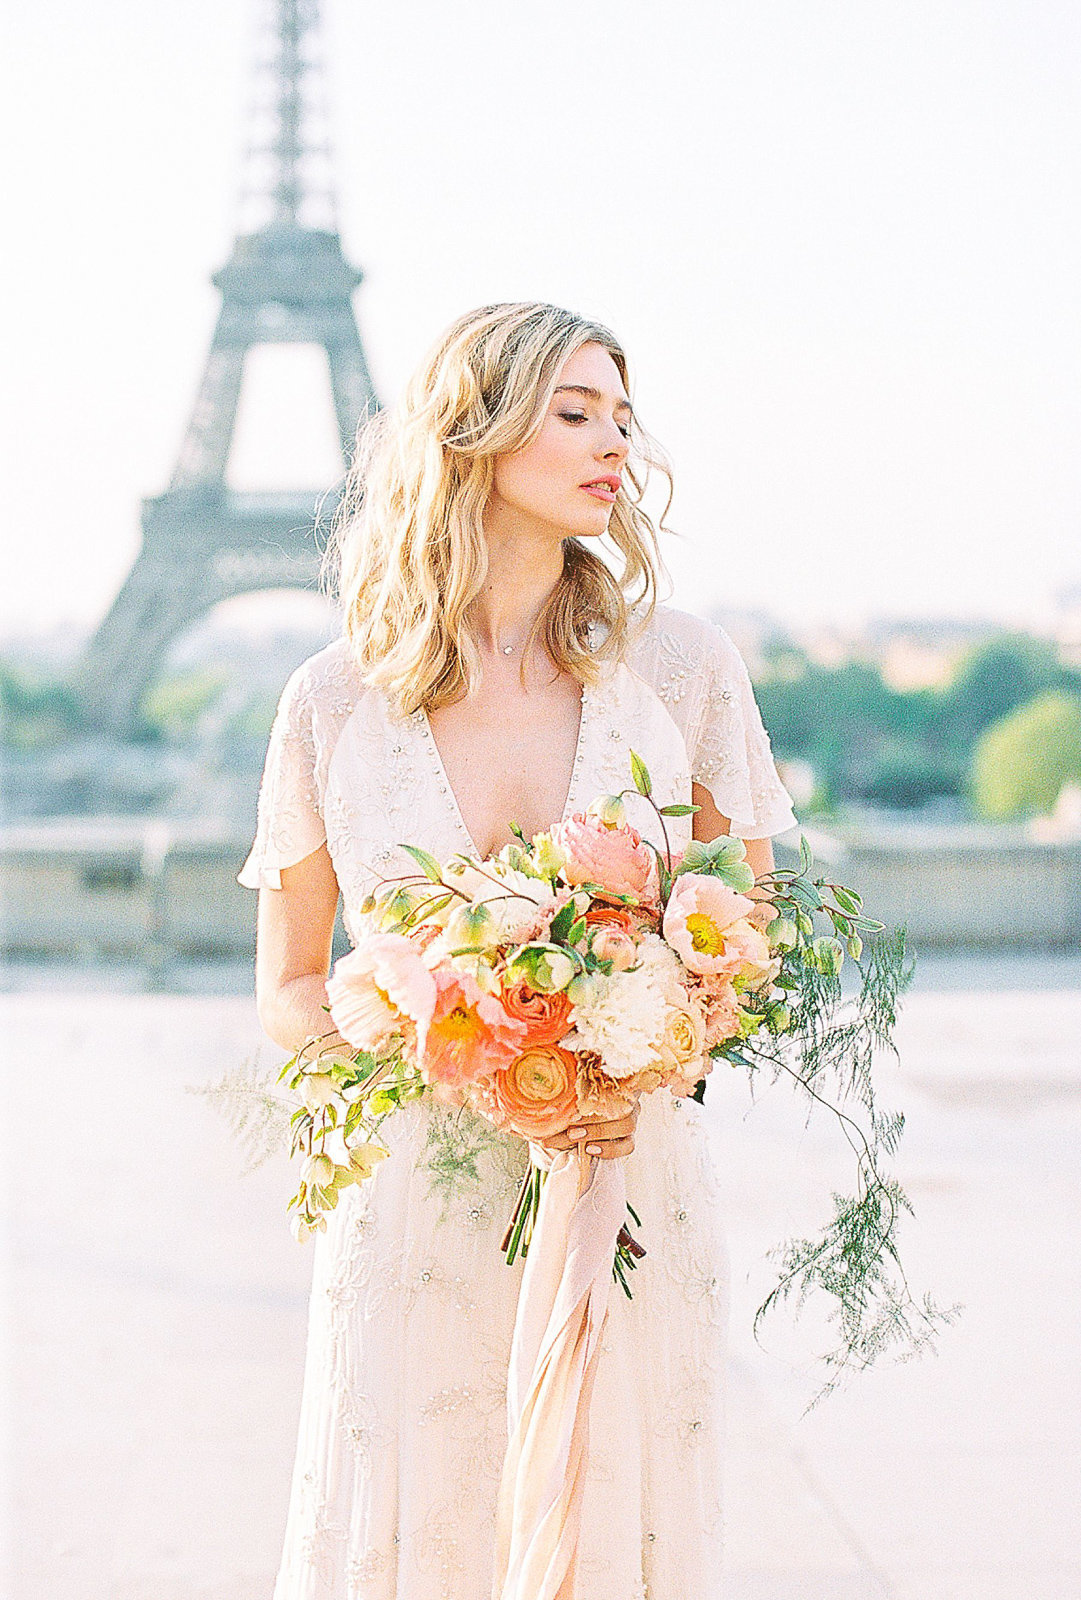 yana-schicht_hamburg_paris-fine-art-film-wedding-photographer_shangri-la_france_013